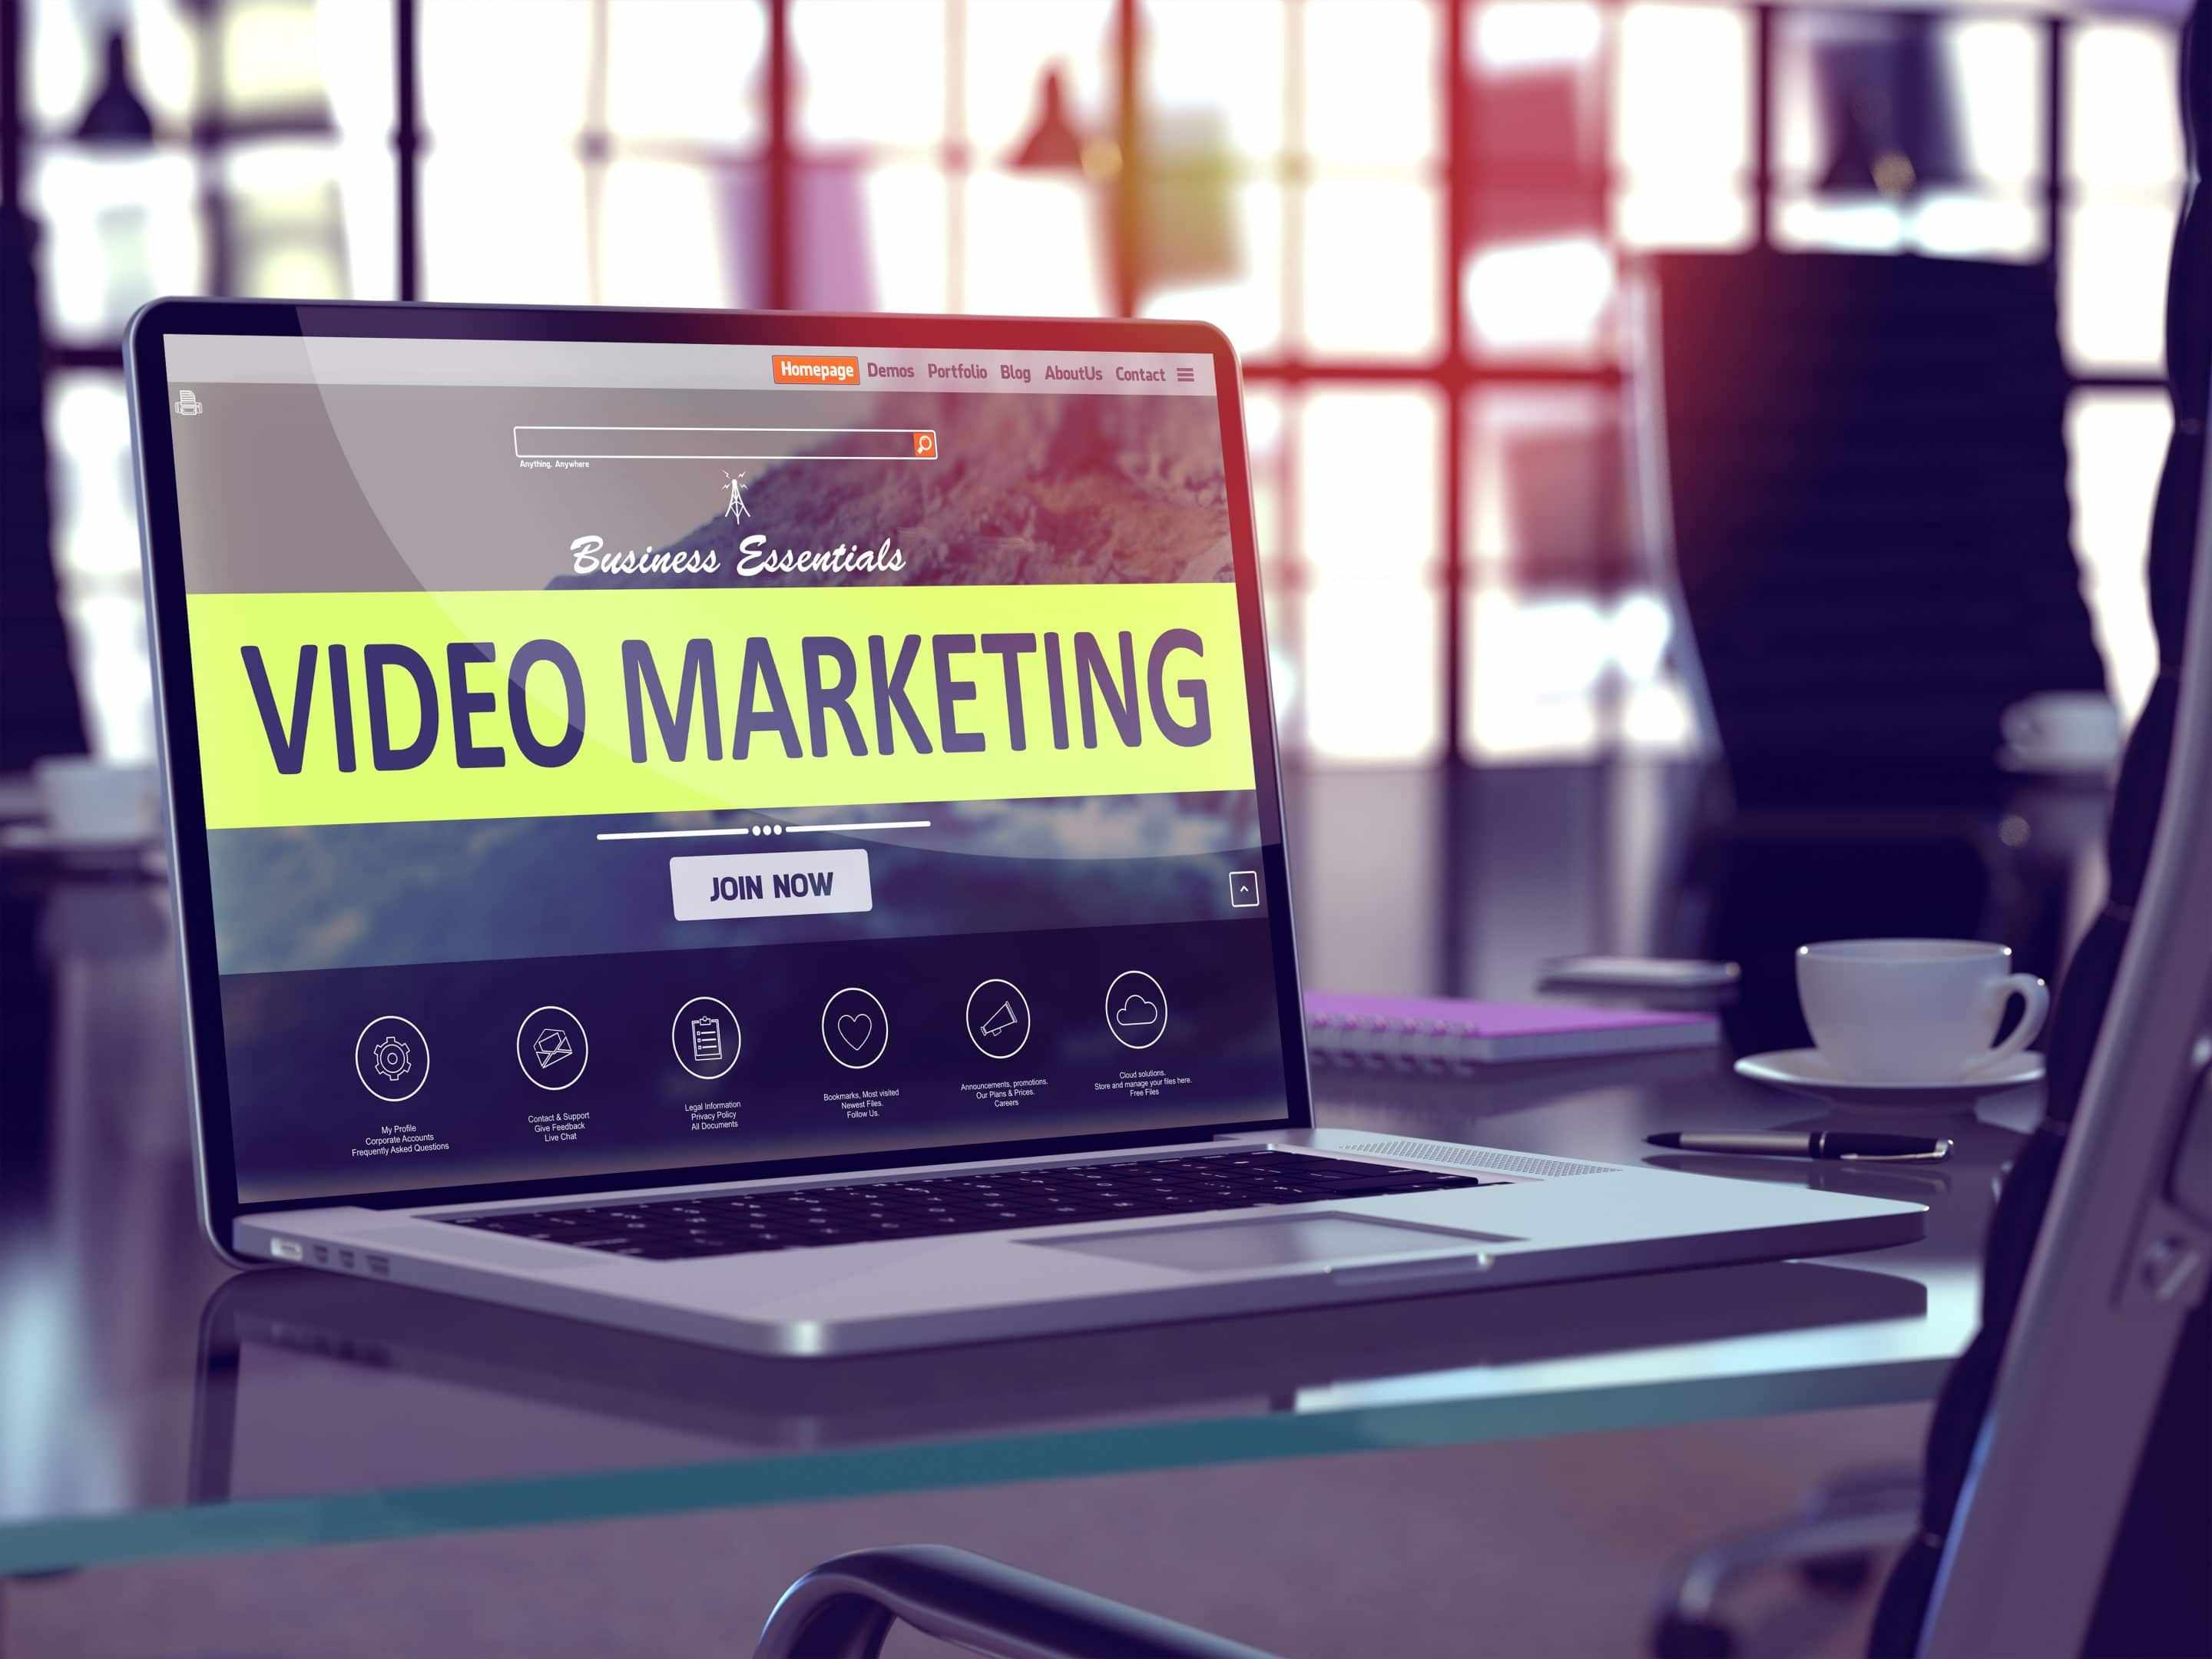 How to Market Products Effectively Using Video Marketing